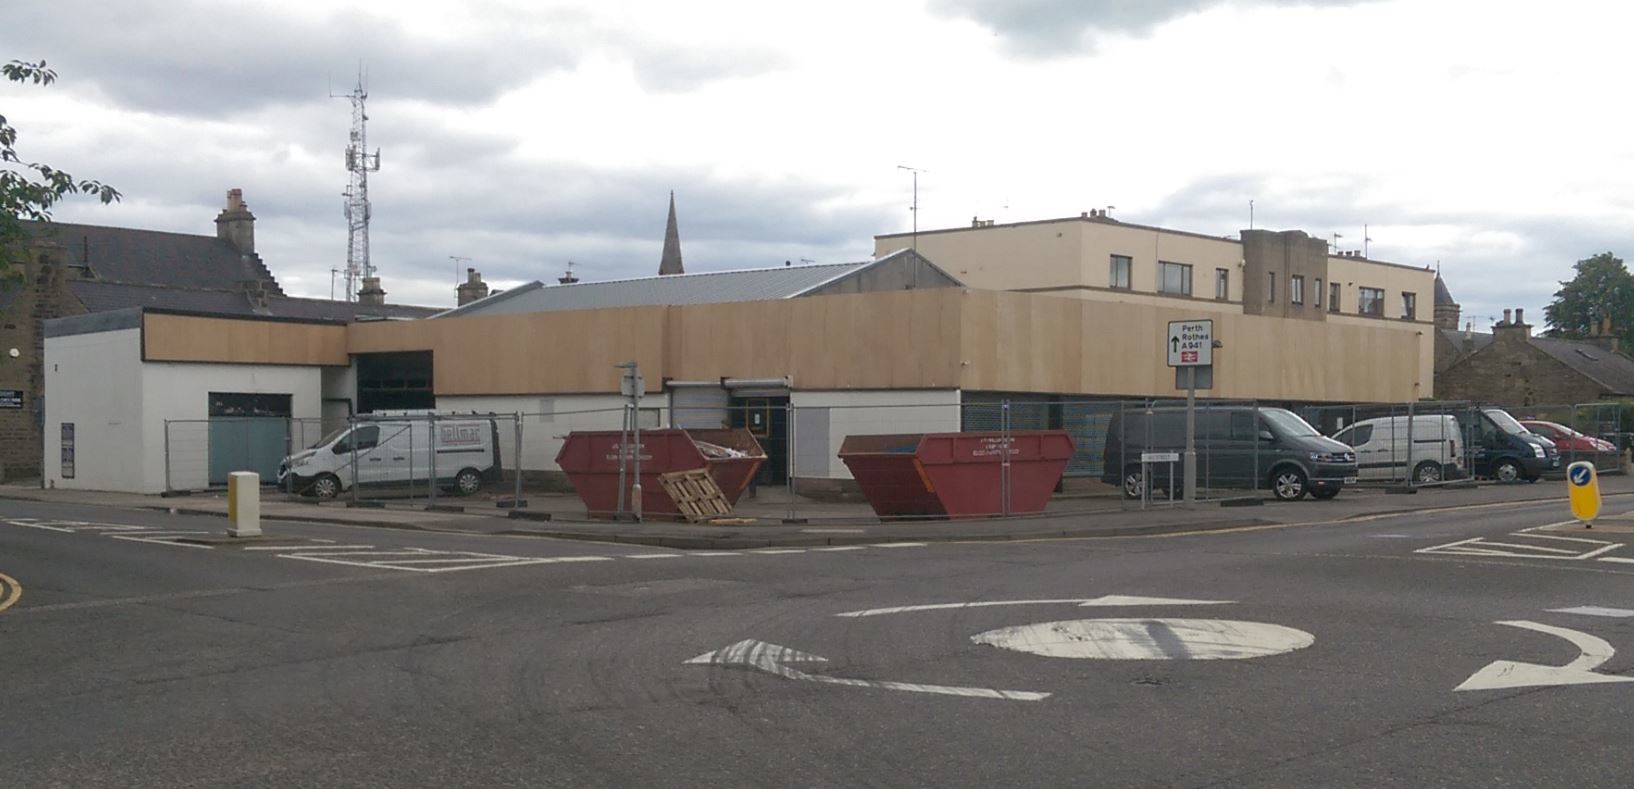 The former Comet store has been empty since 2012.